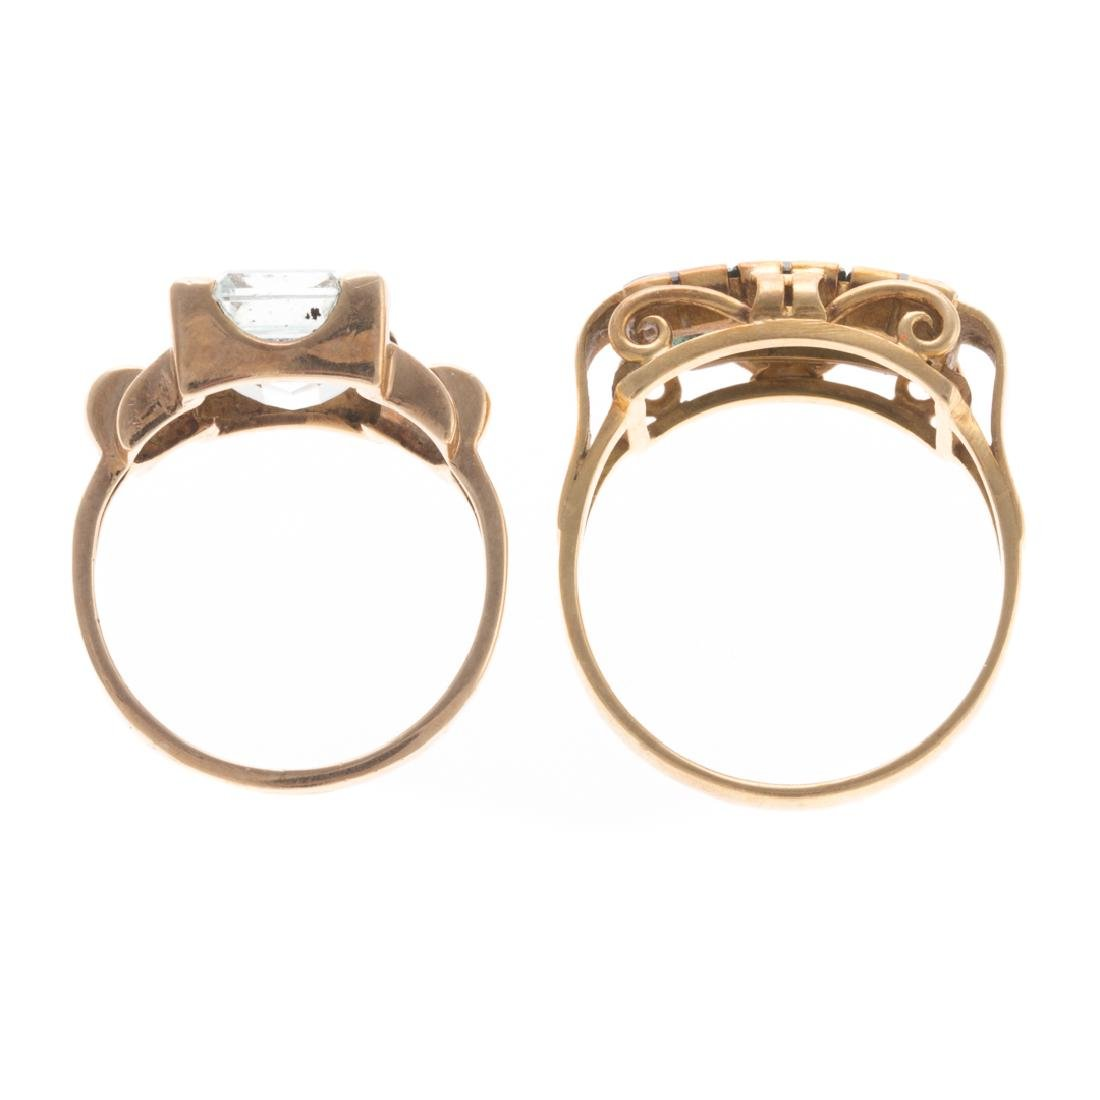 A Pair of Gemstone Rings in Gold - 6